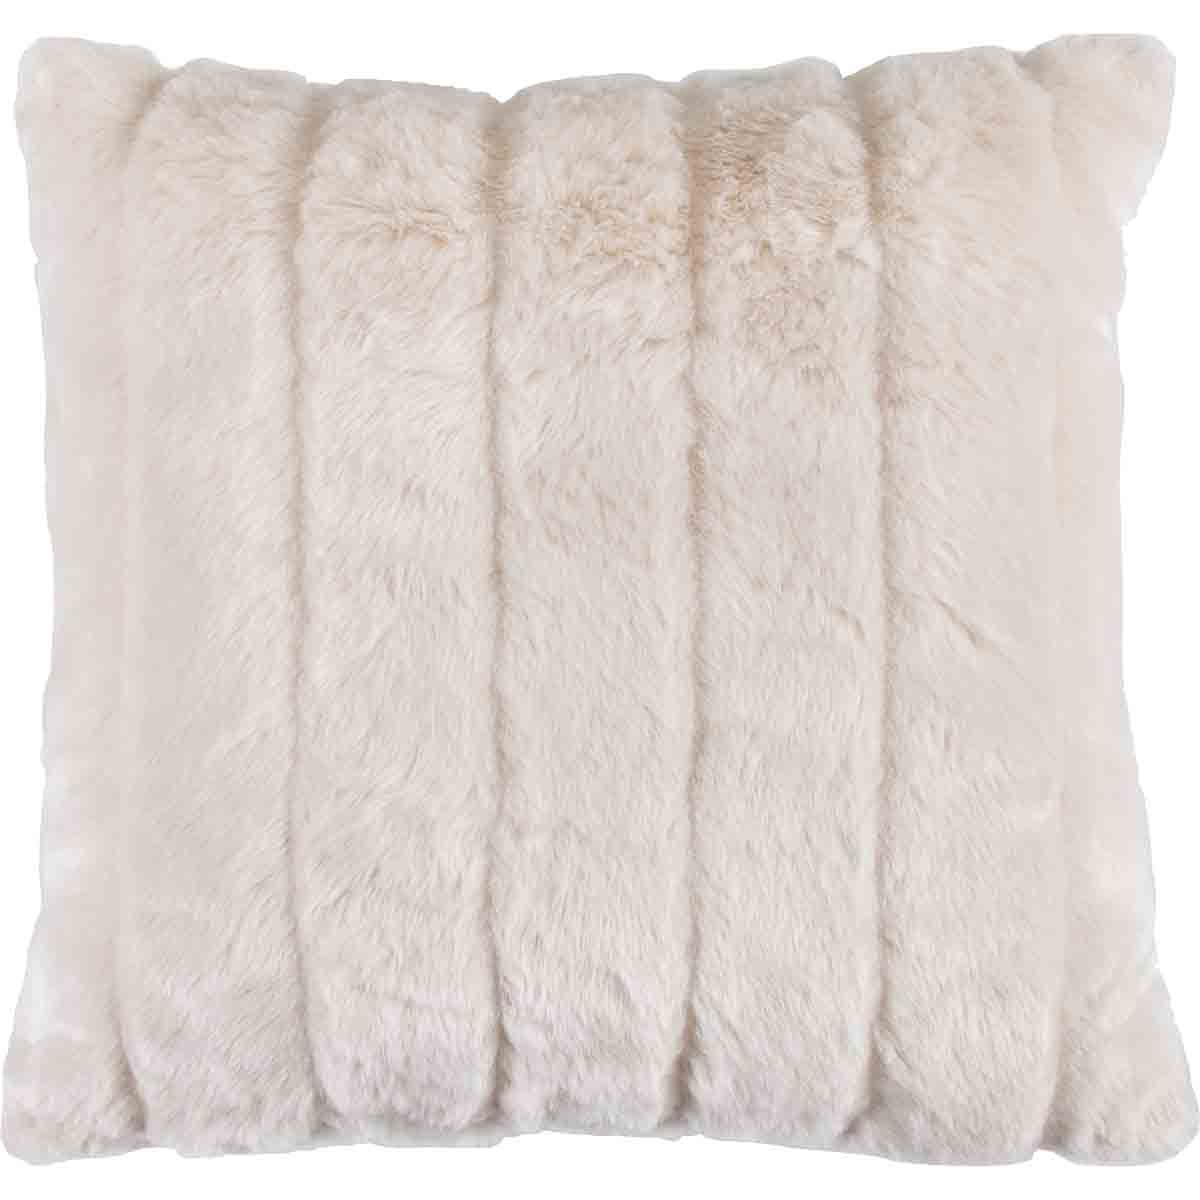 Mink Faux Fur Pillow